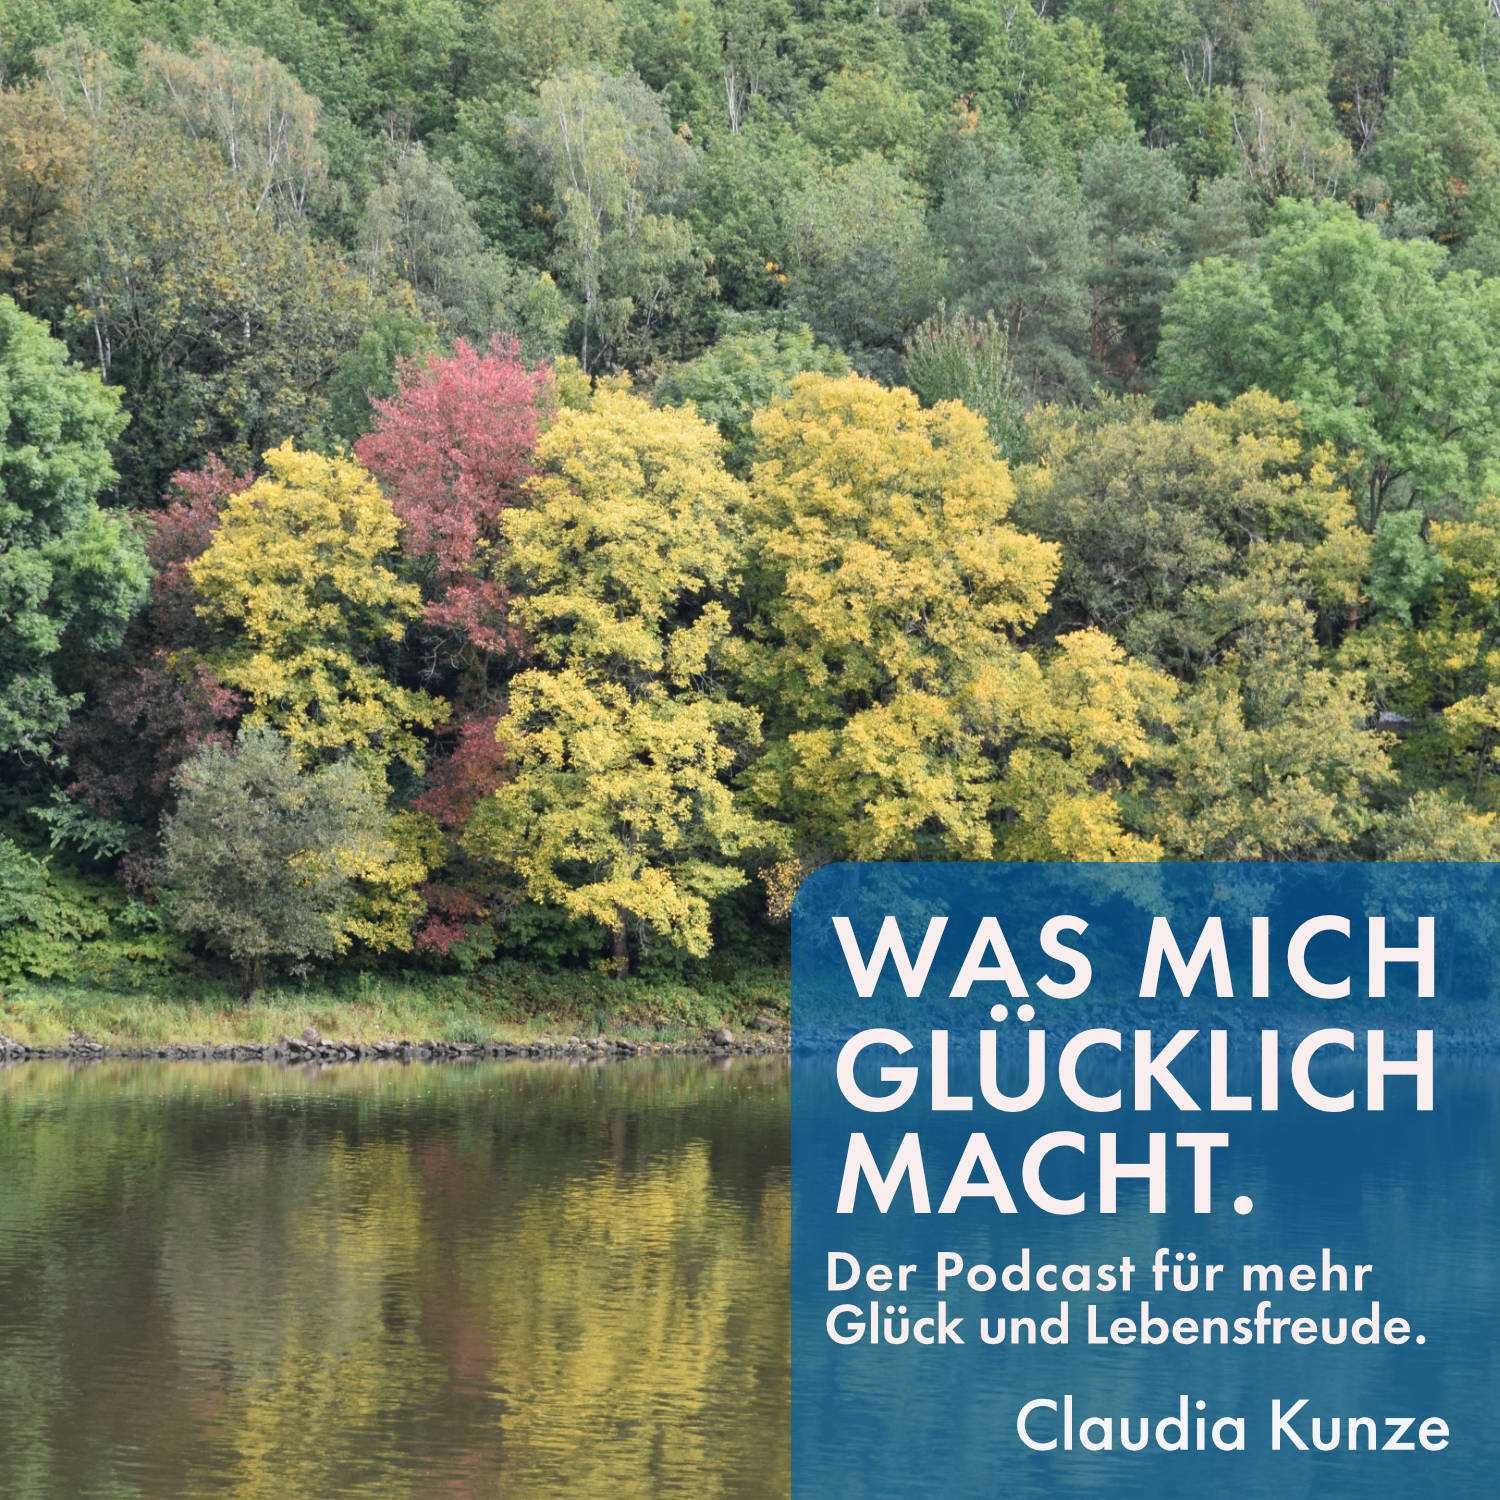 https://www.claudiakunze.de/wp-content/uploads/2020/12/002-Claudia-Kunze-Podcast-Was-mich-glu%CC%88cklich-macht.jpg